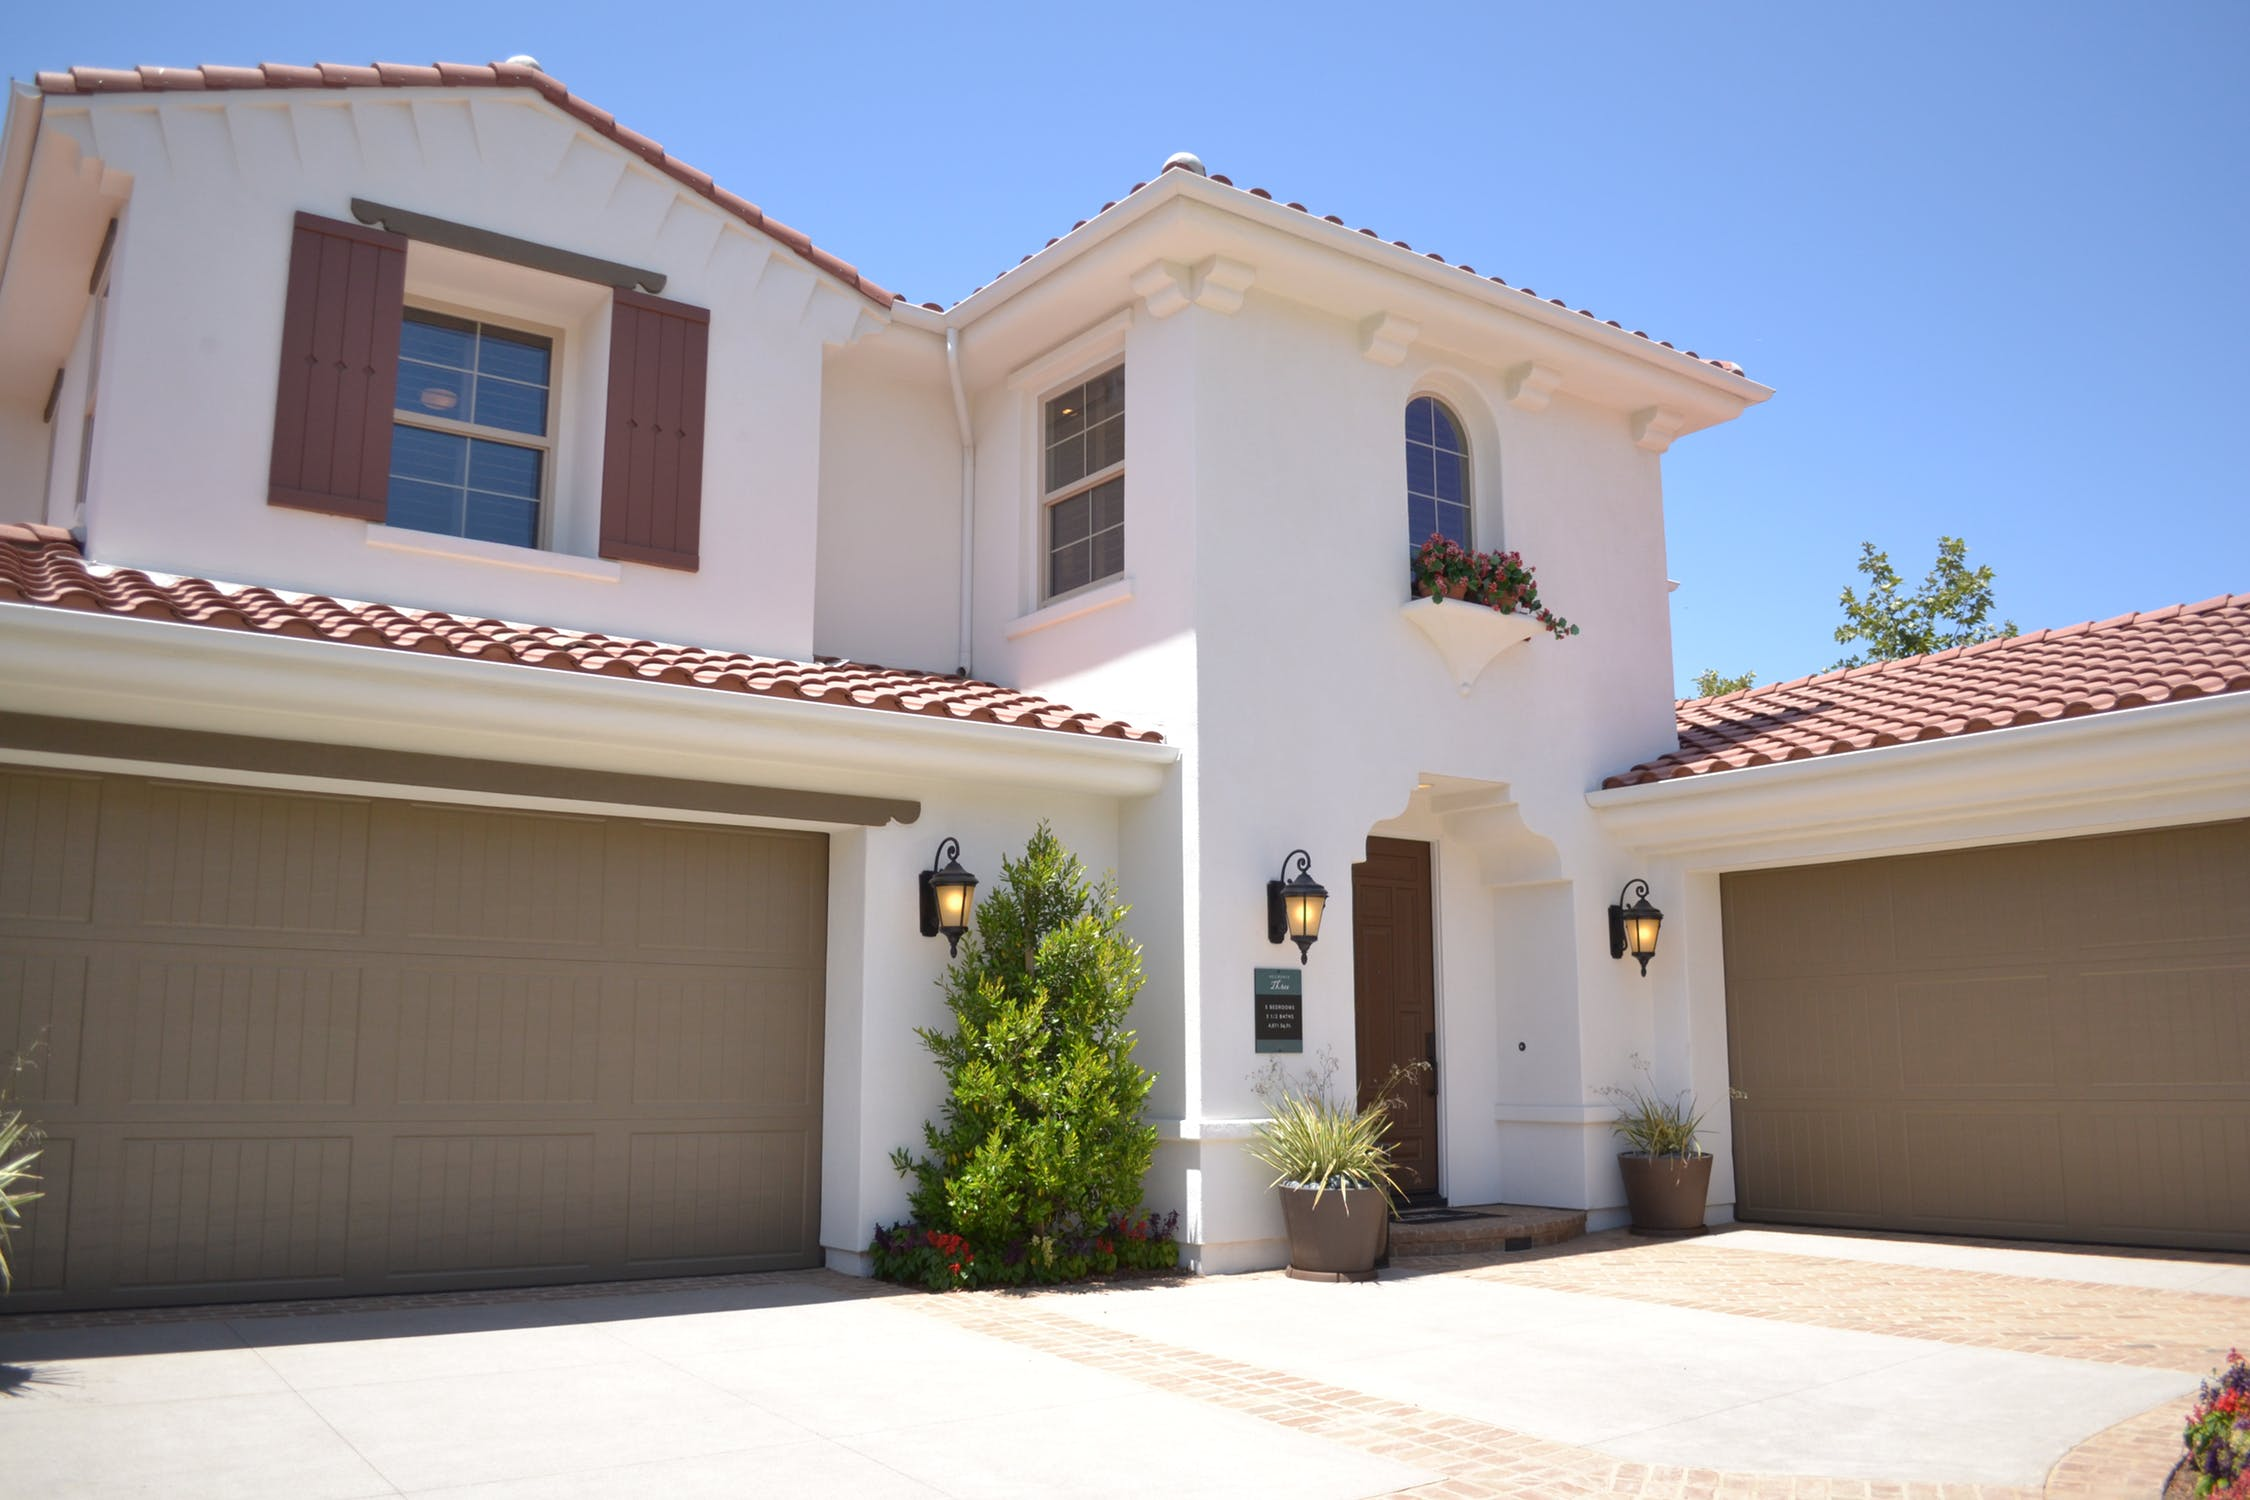 What You Need to Know About Garage Doors in Tempe